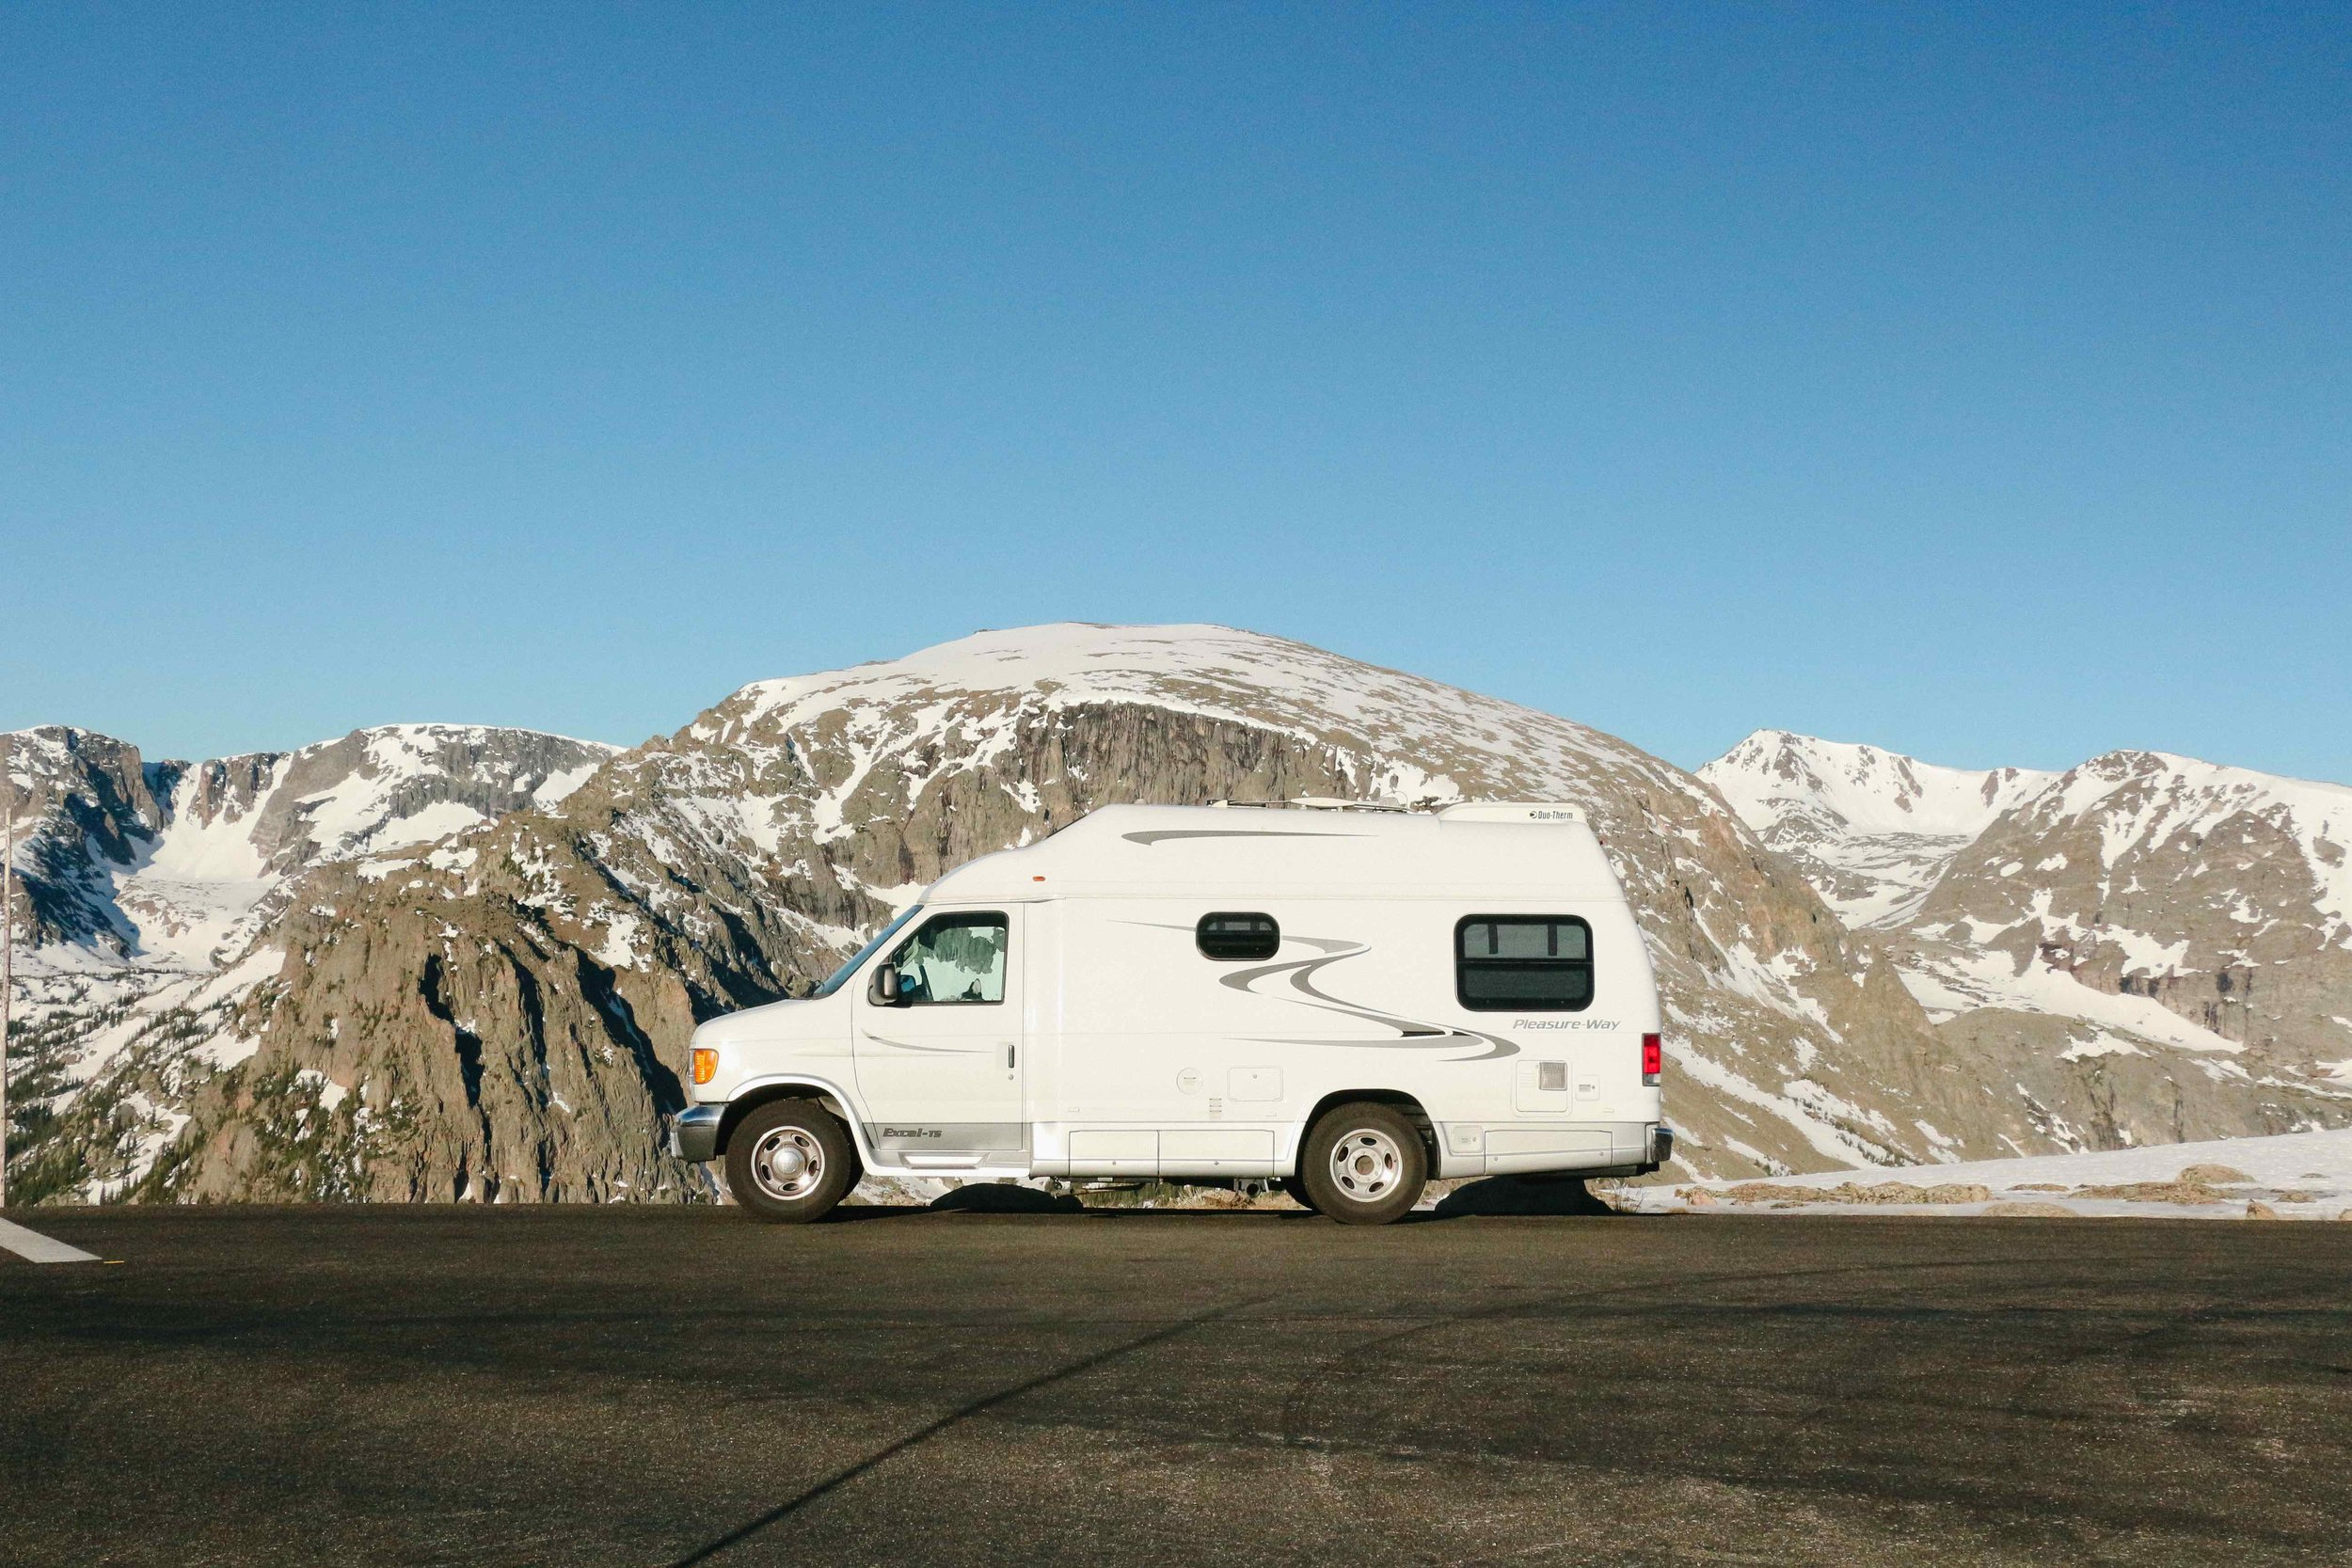 Travel in camper/ RV